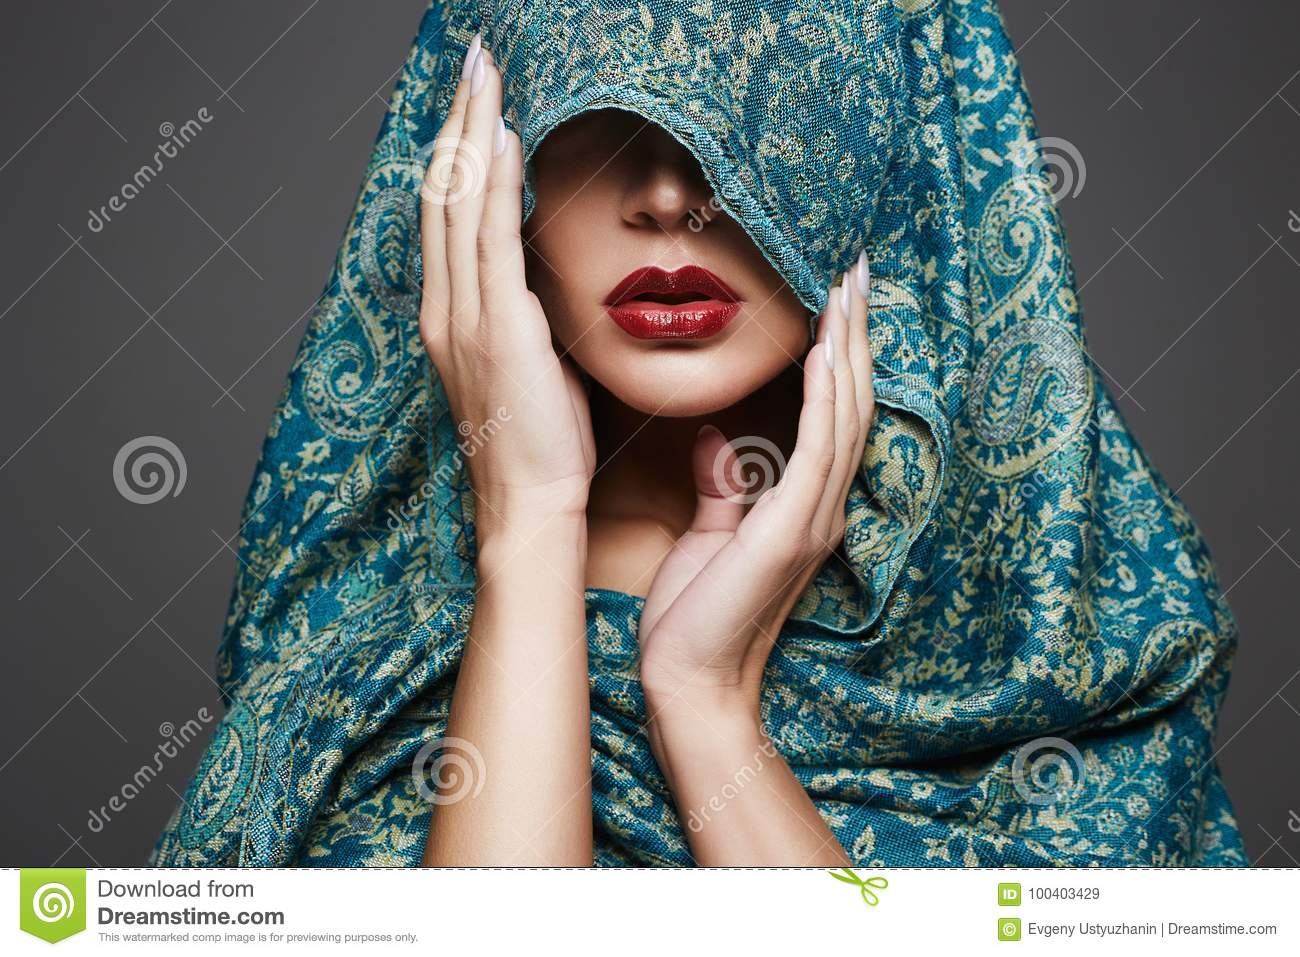 96061c53737 Beautiful woman covers her face with a colored cloth.red lips girl.fashion  islamic style woman